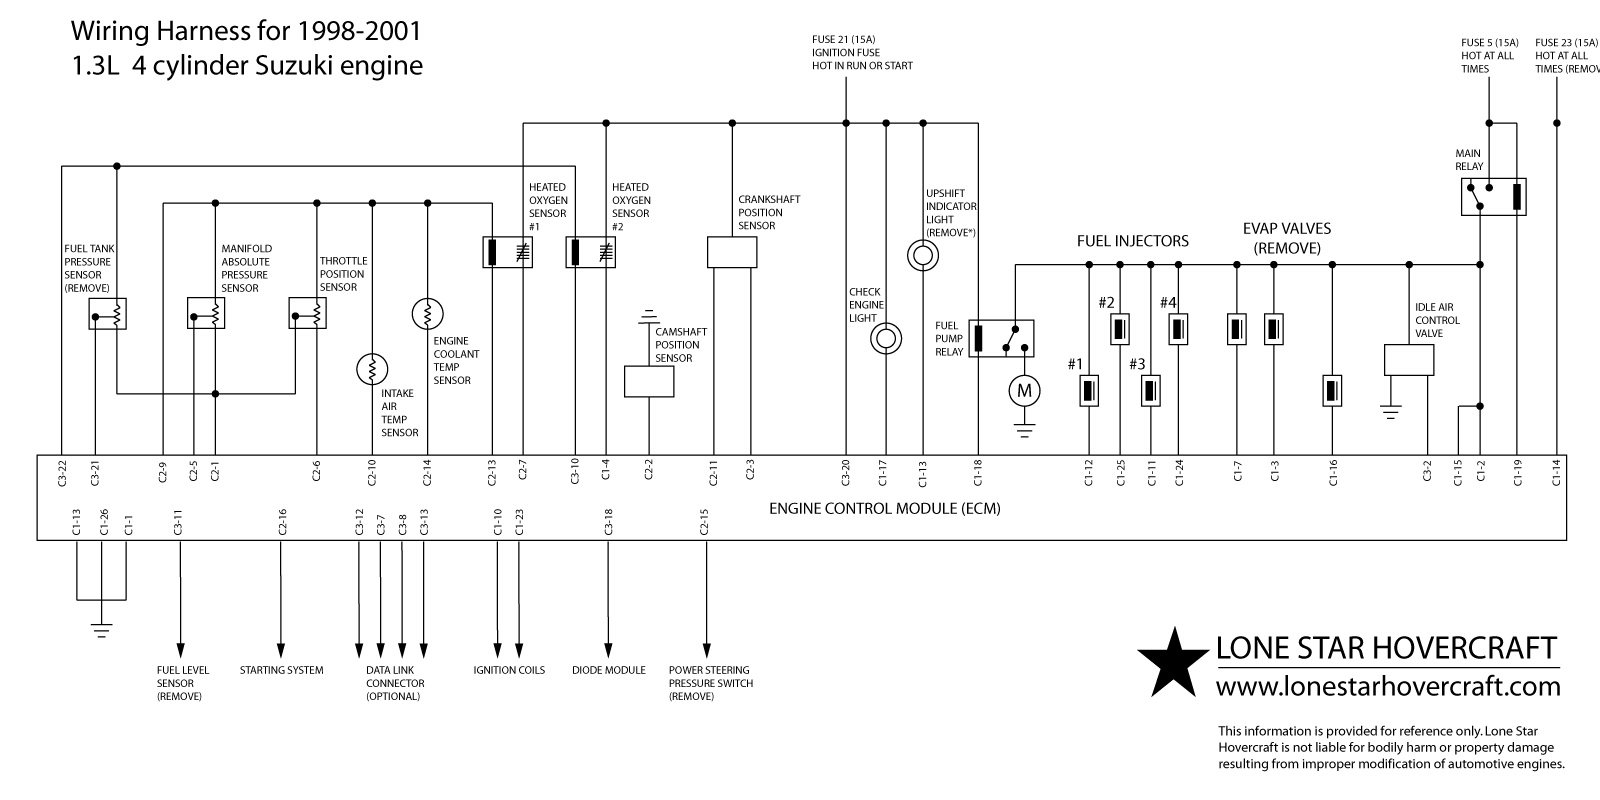 1994 Suzuki Swift Fuse Panel Diagram - Wiring Diagram